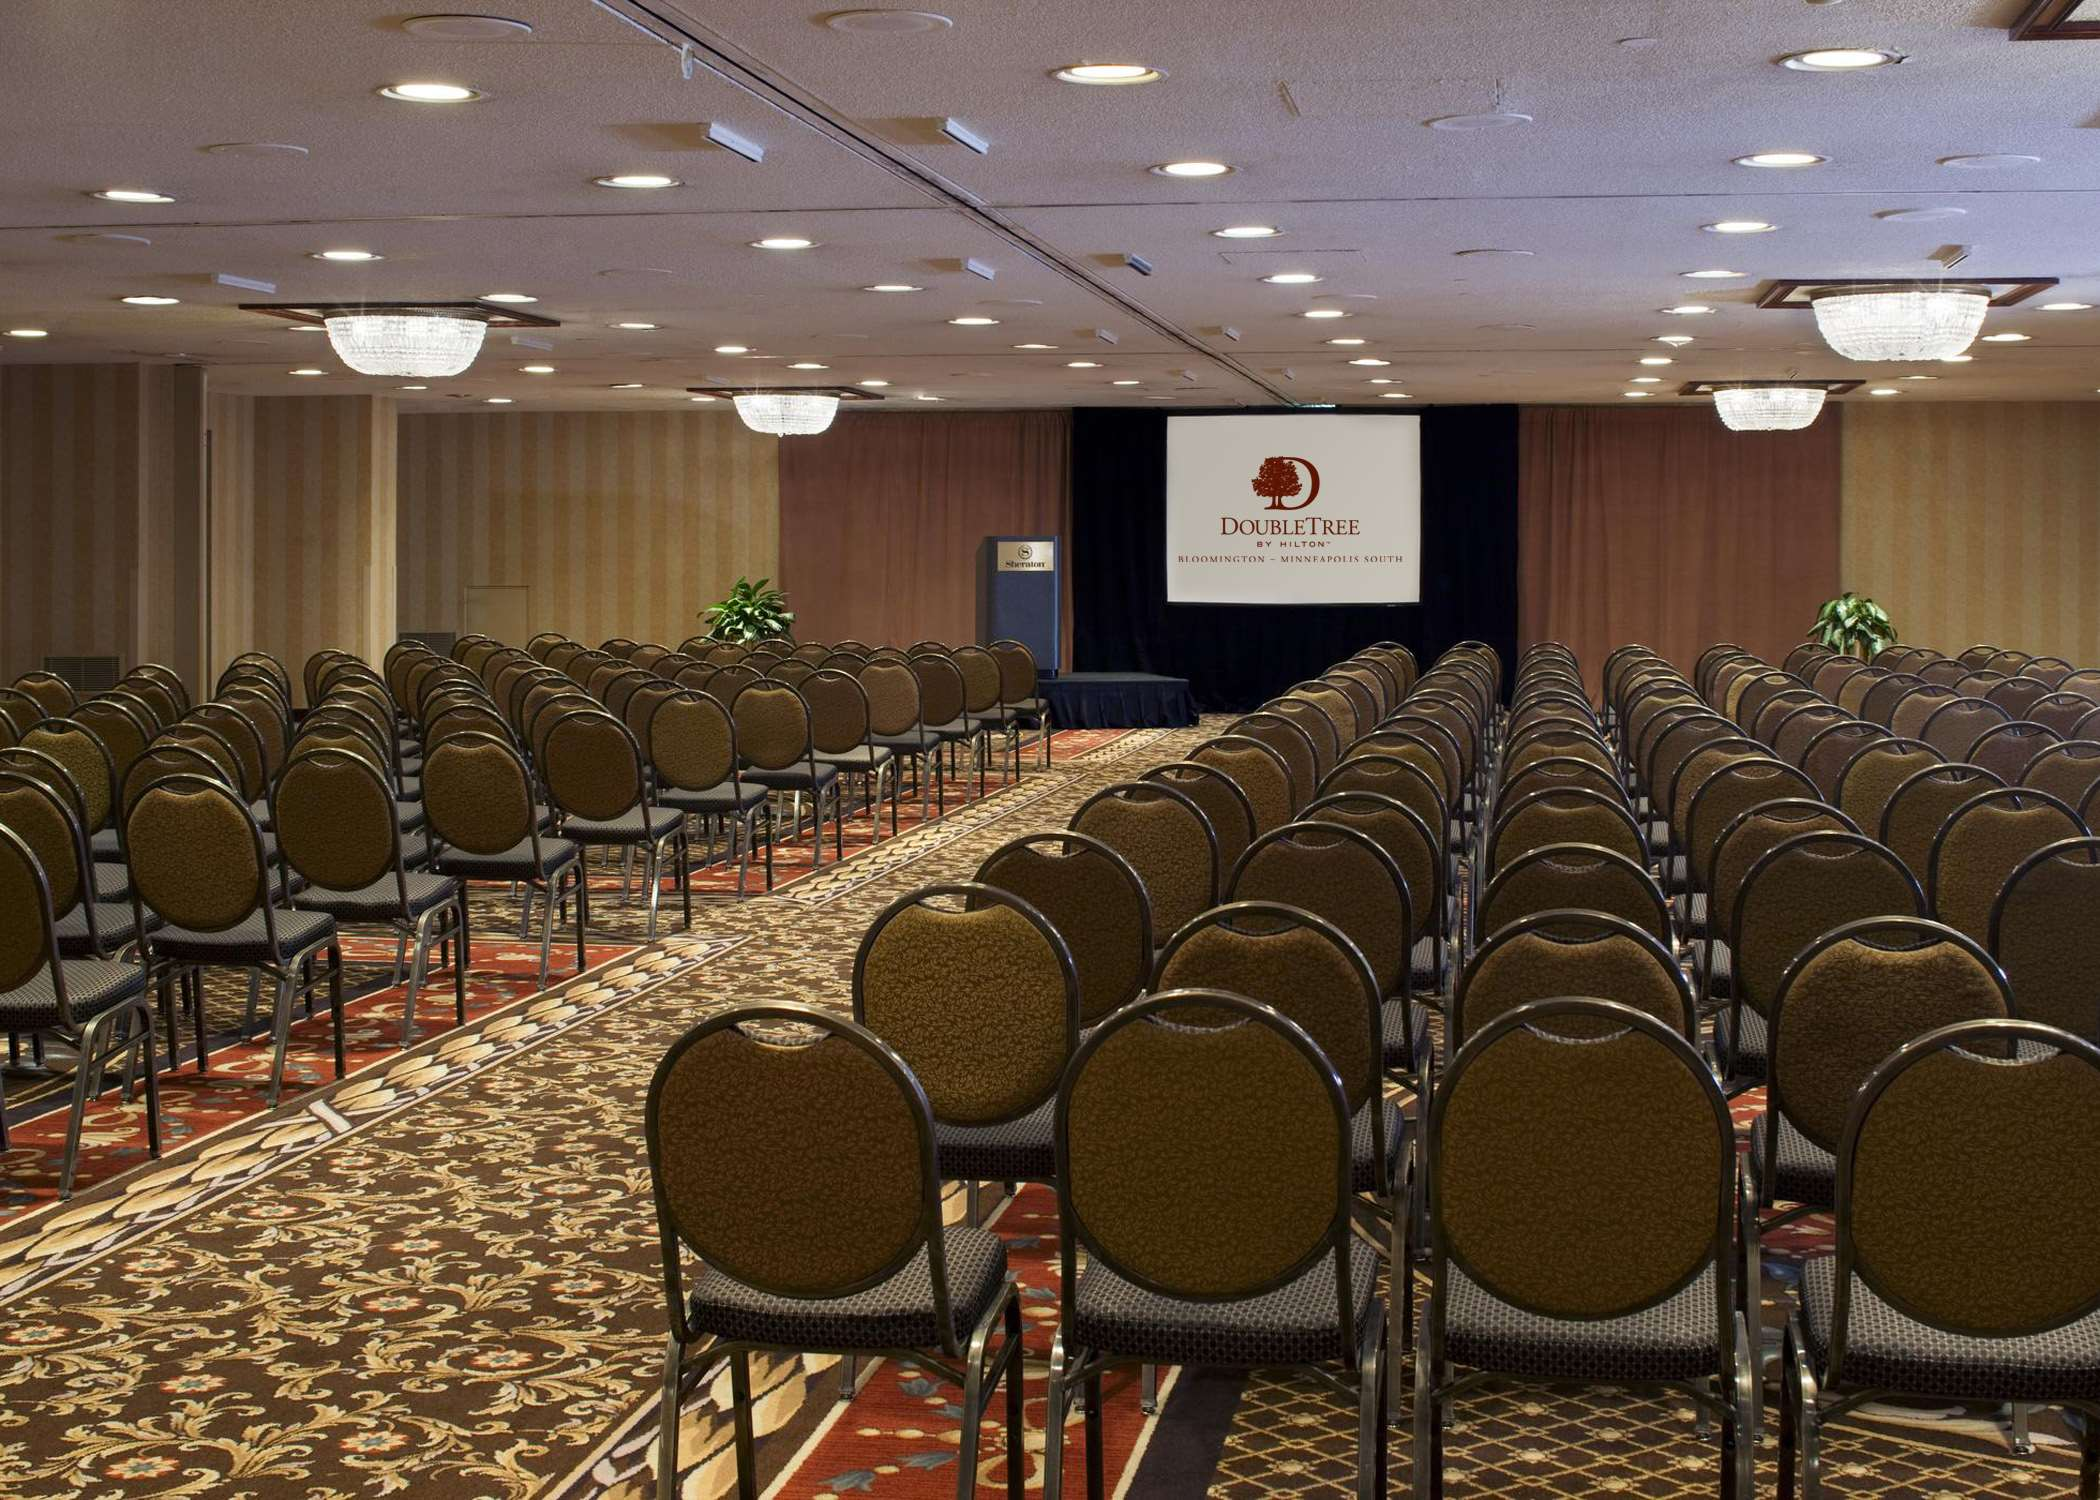 DoubleTree by Hilton Hotel Bloomington - Minneapolis South image 24